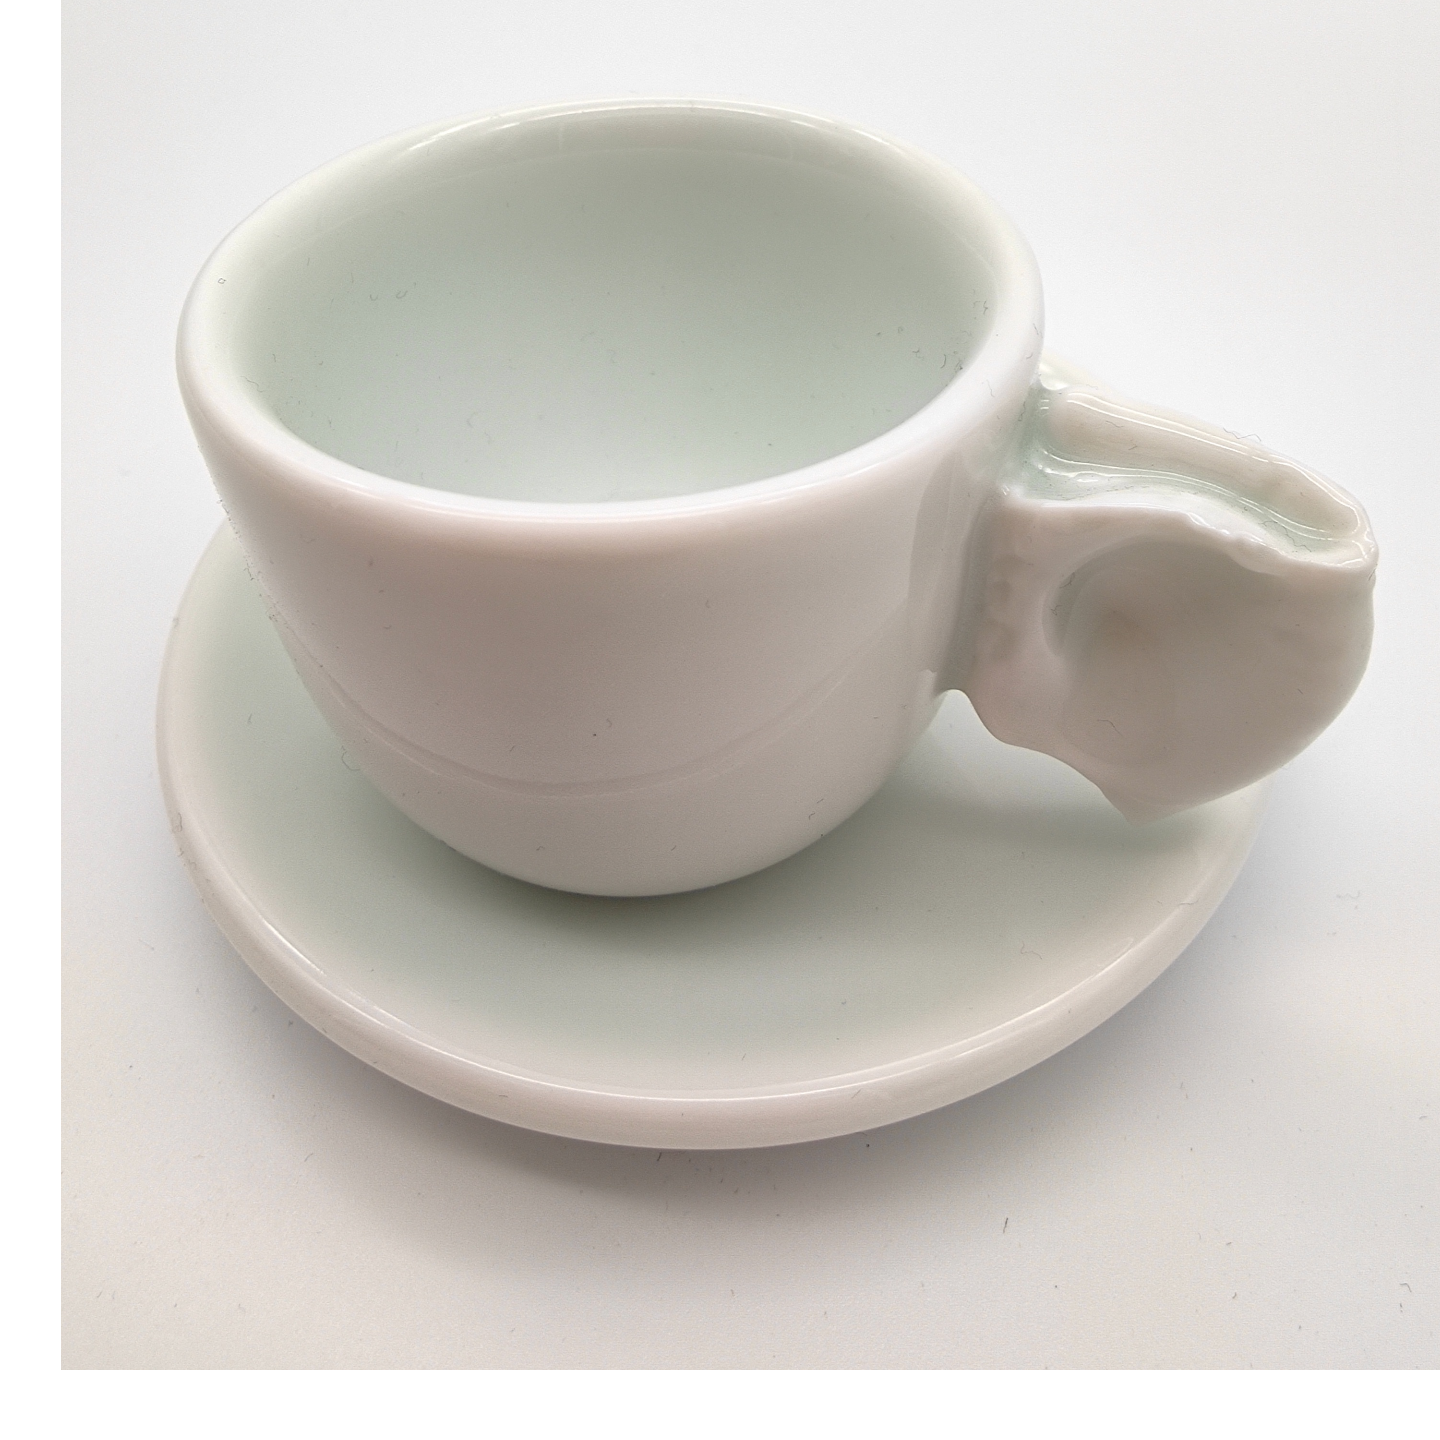 Green White Snatched-Ear Espresso Cup